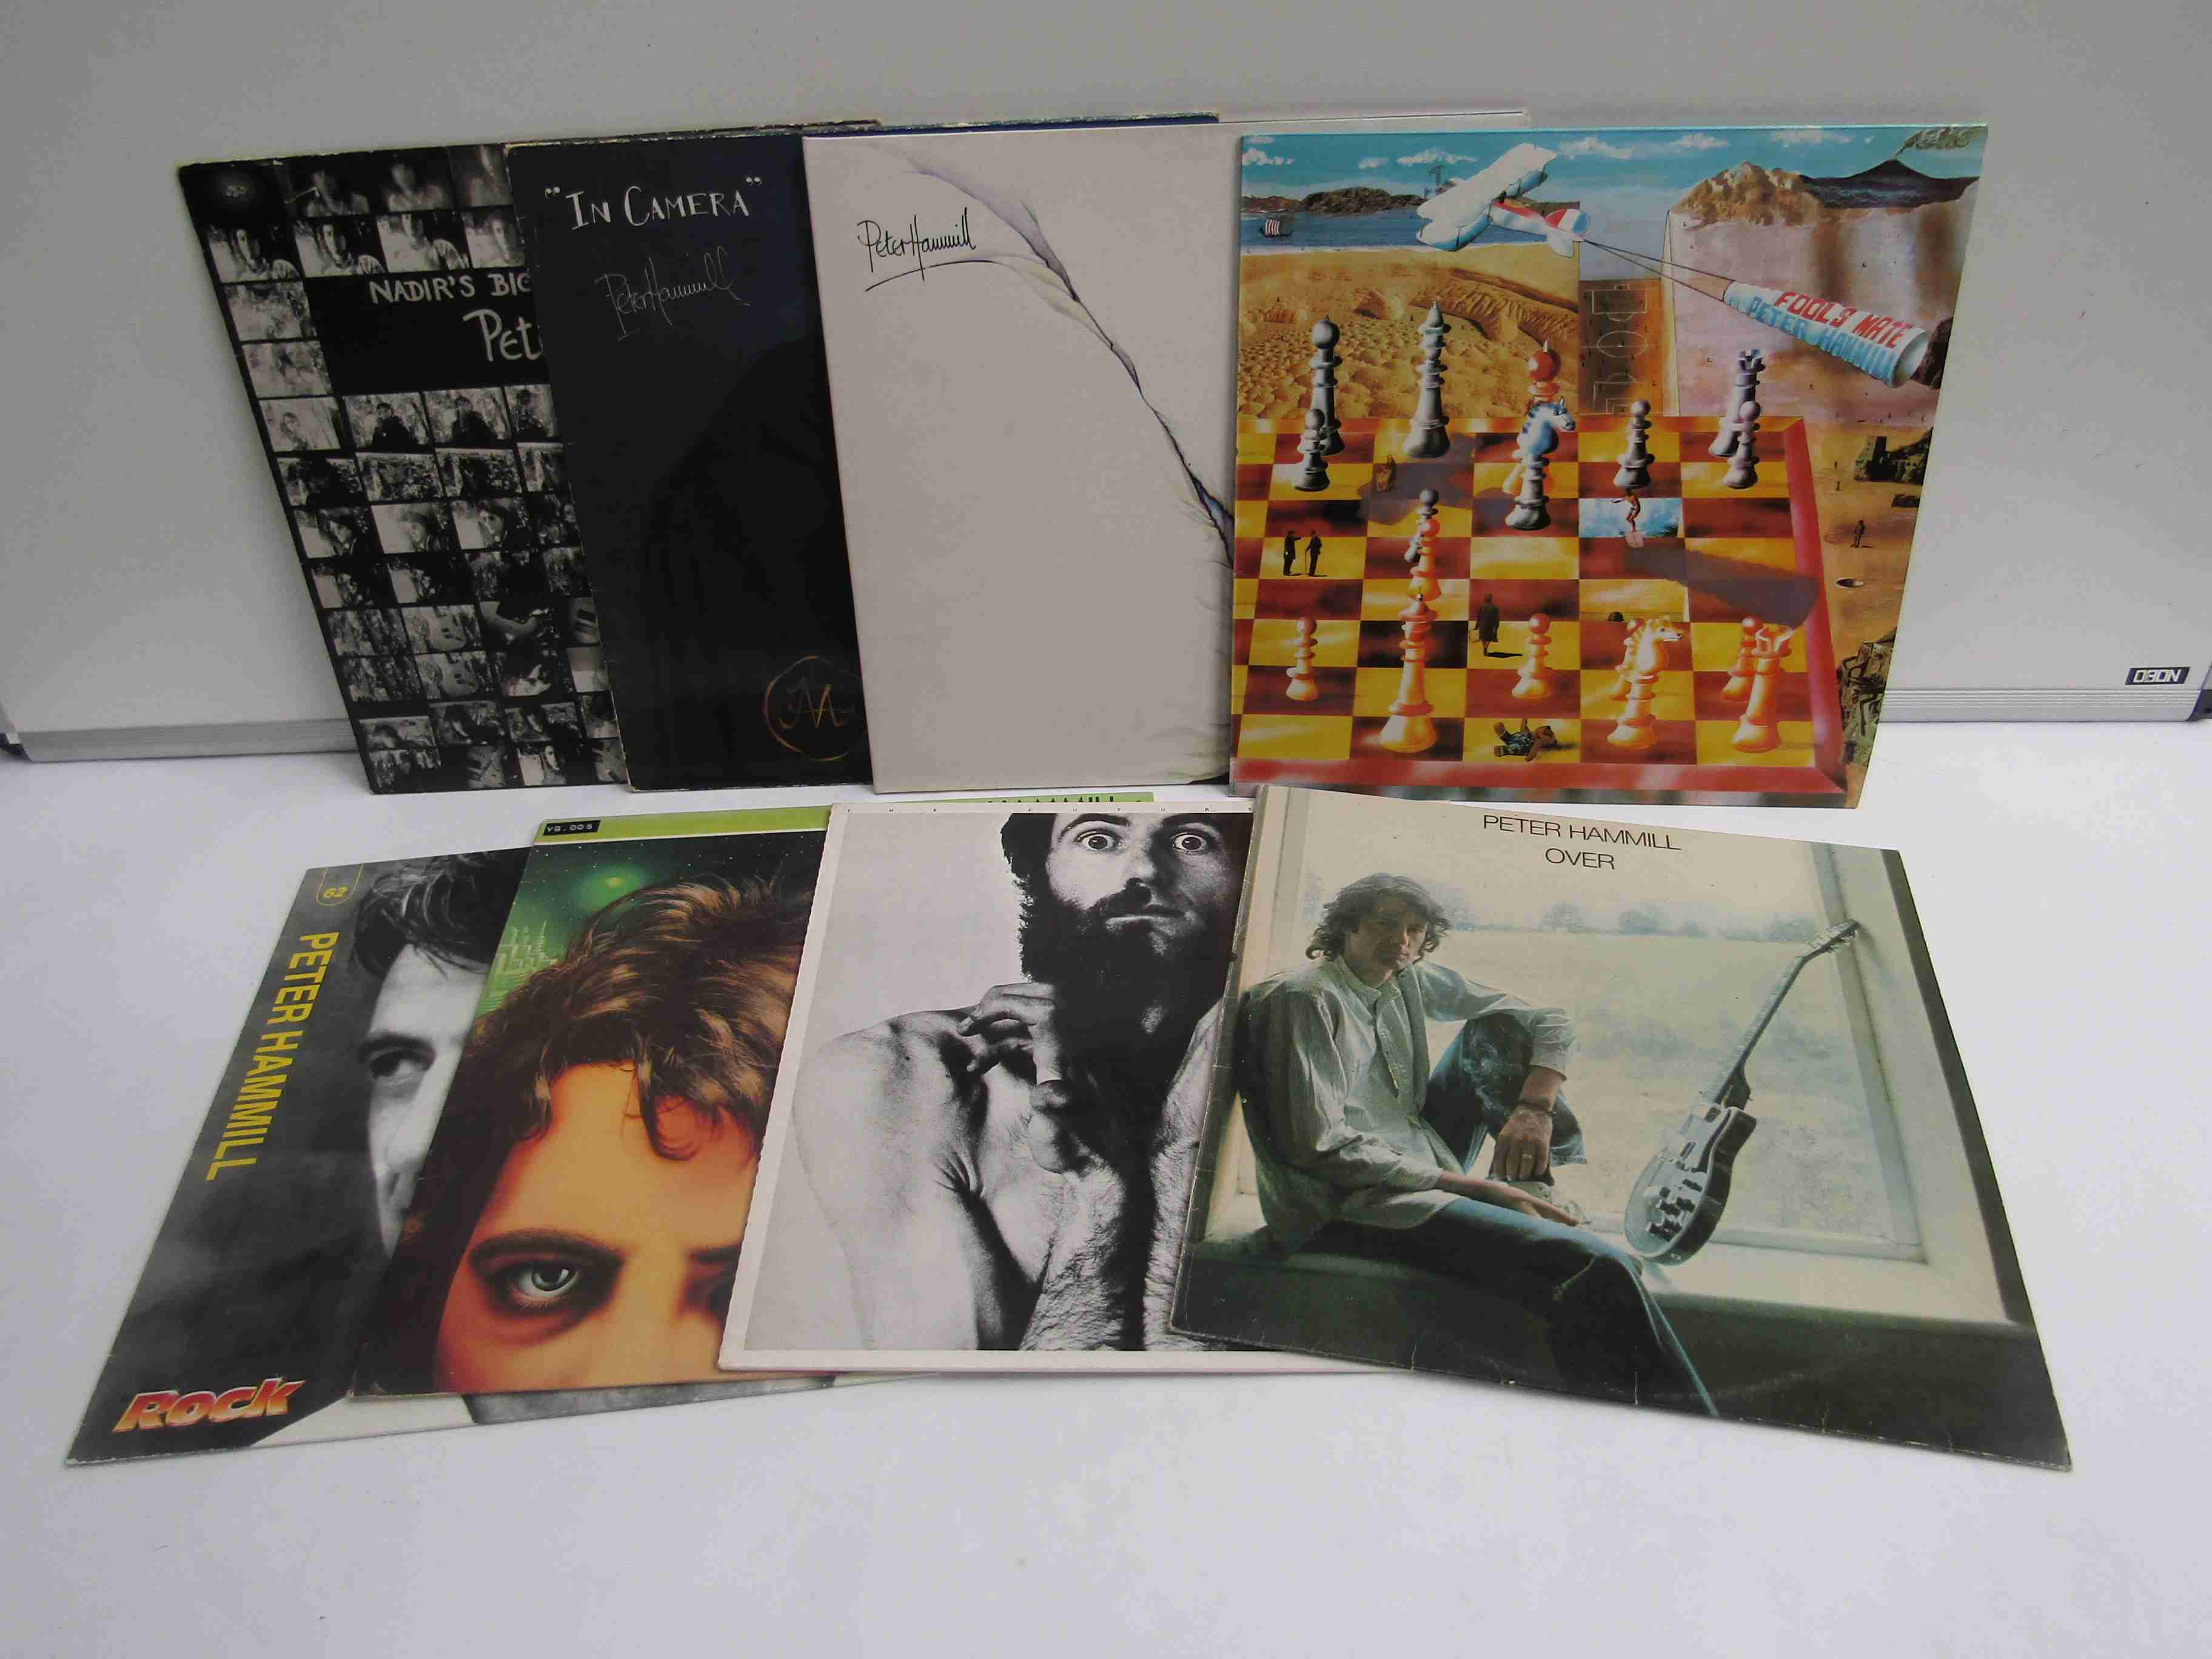 PETER HAMMILL: Eight LP's including 'The Future Now', 'Over', 'Nadir's Big Chance', 'In Camera',